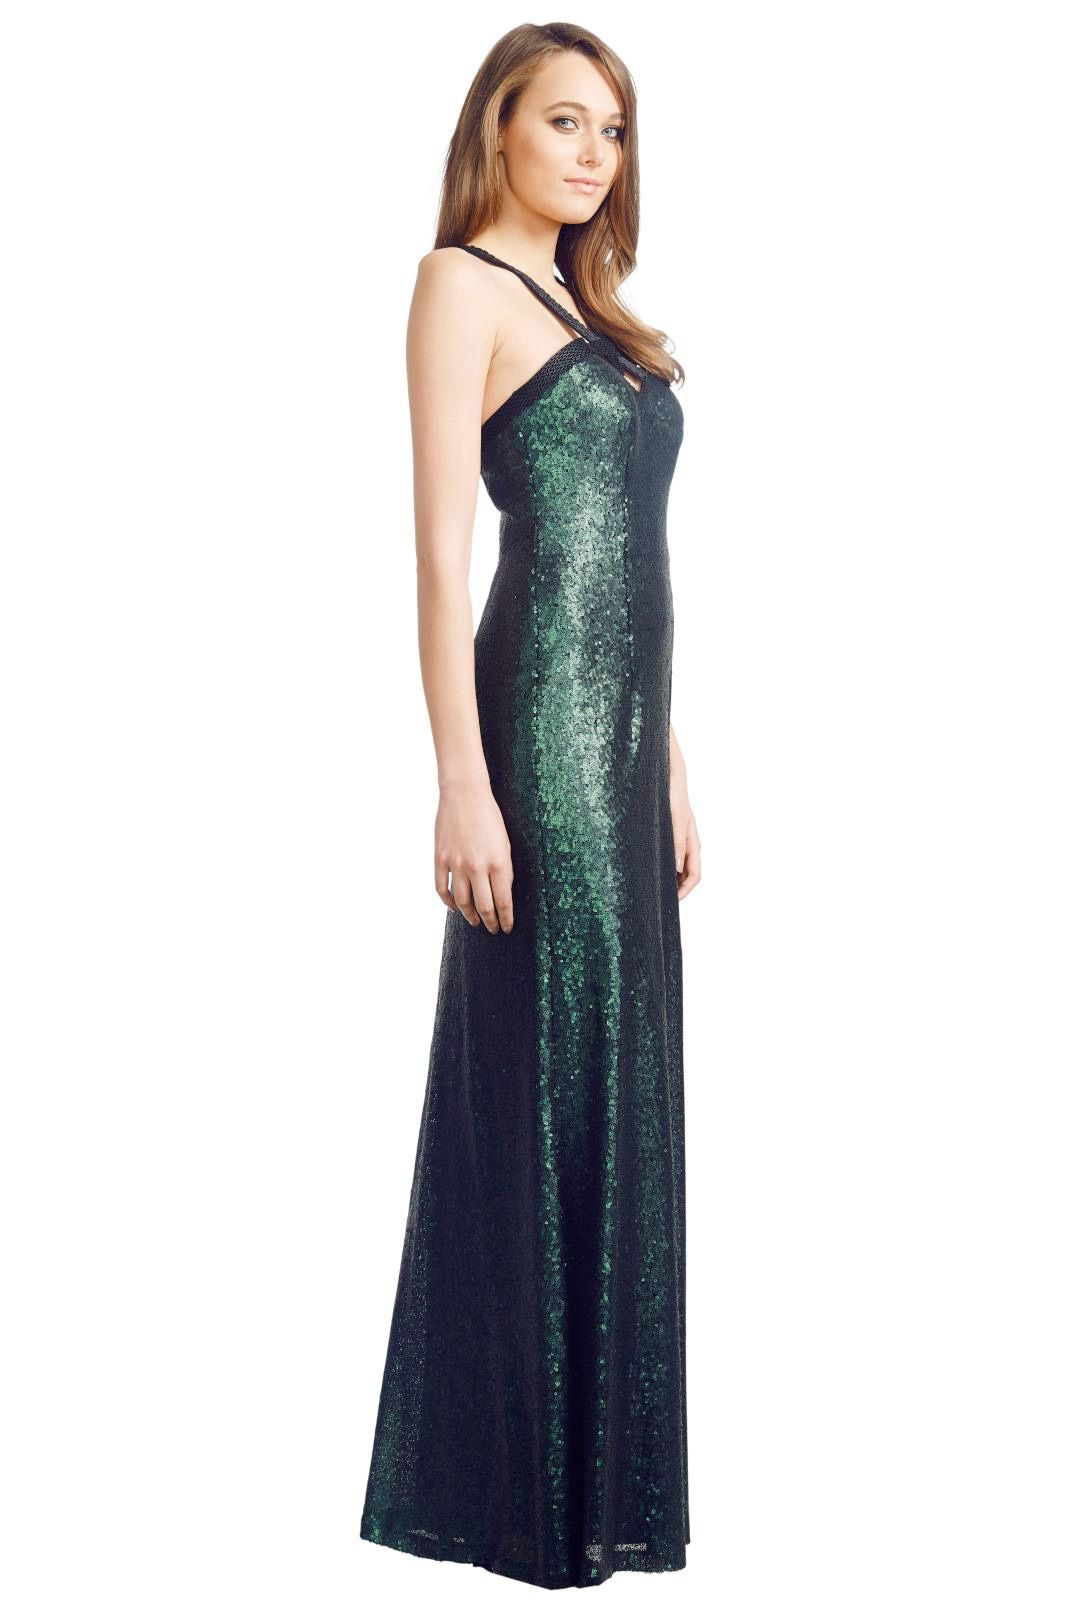 George - Emerald Luna Gown - Green - Side